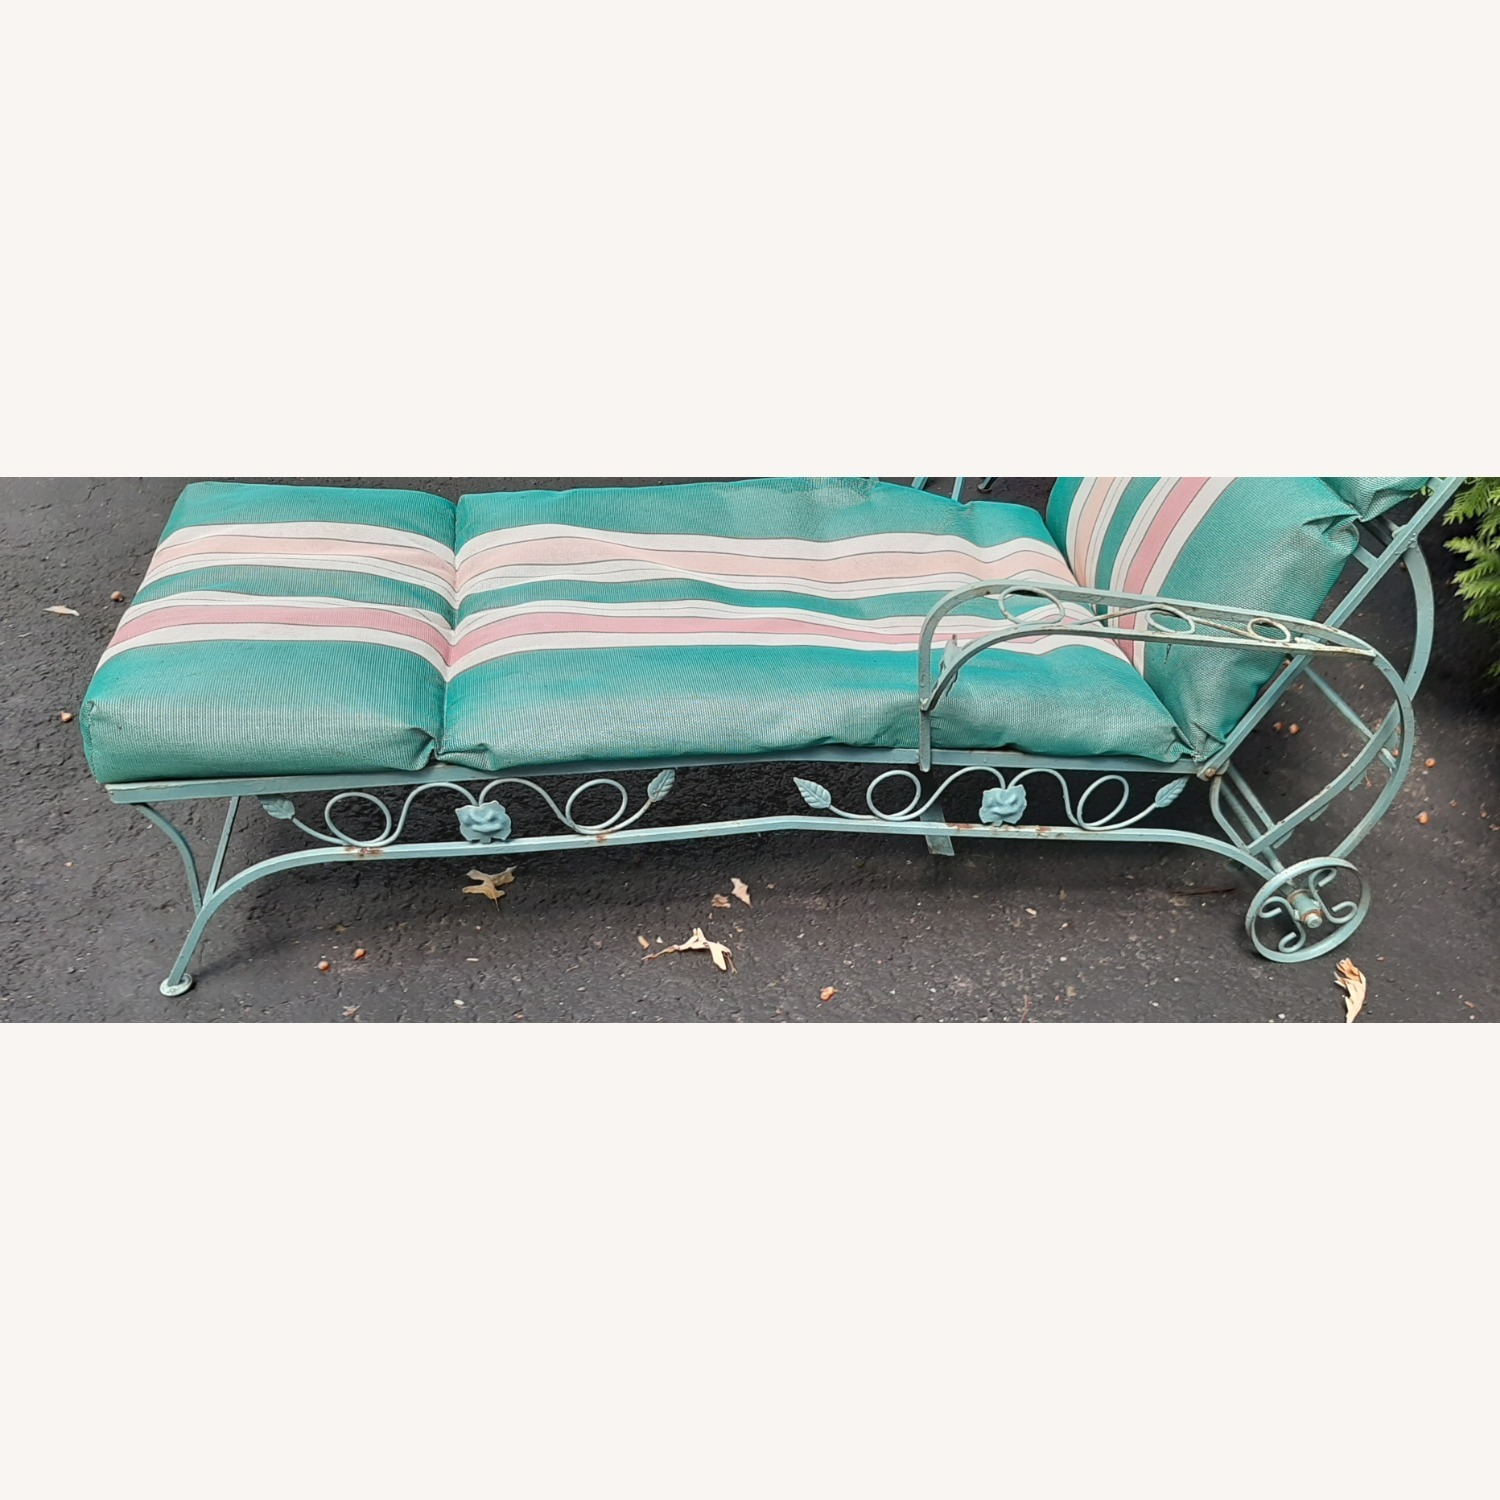 Woodard Patio Chaise Lounge - image-4